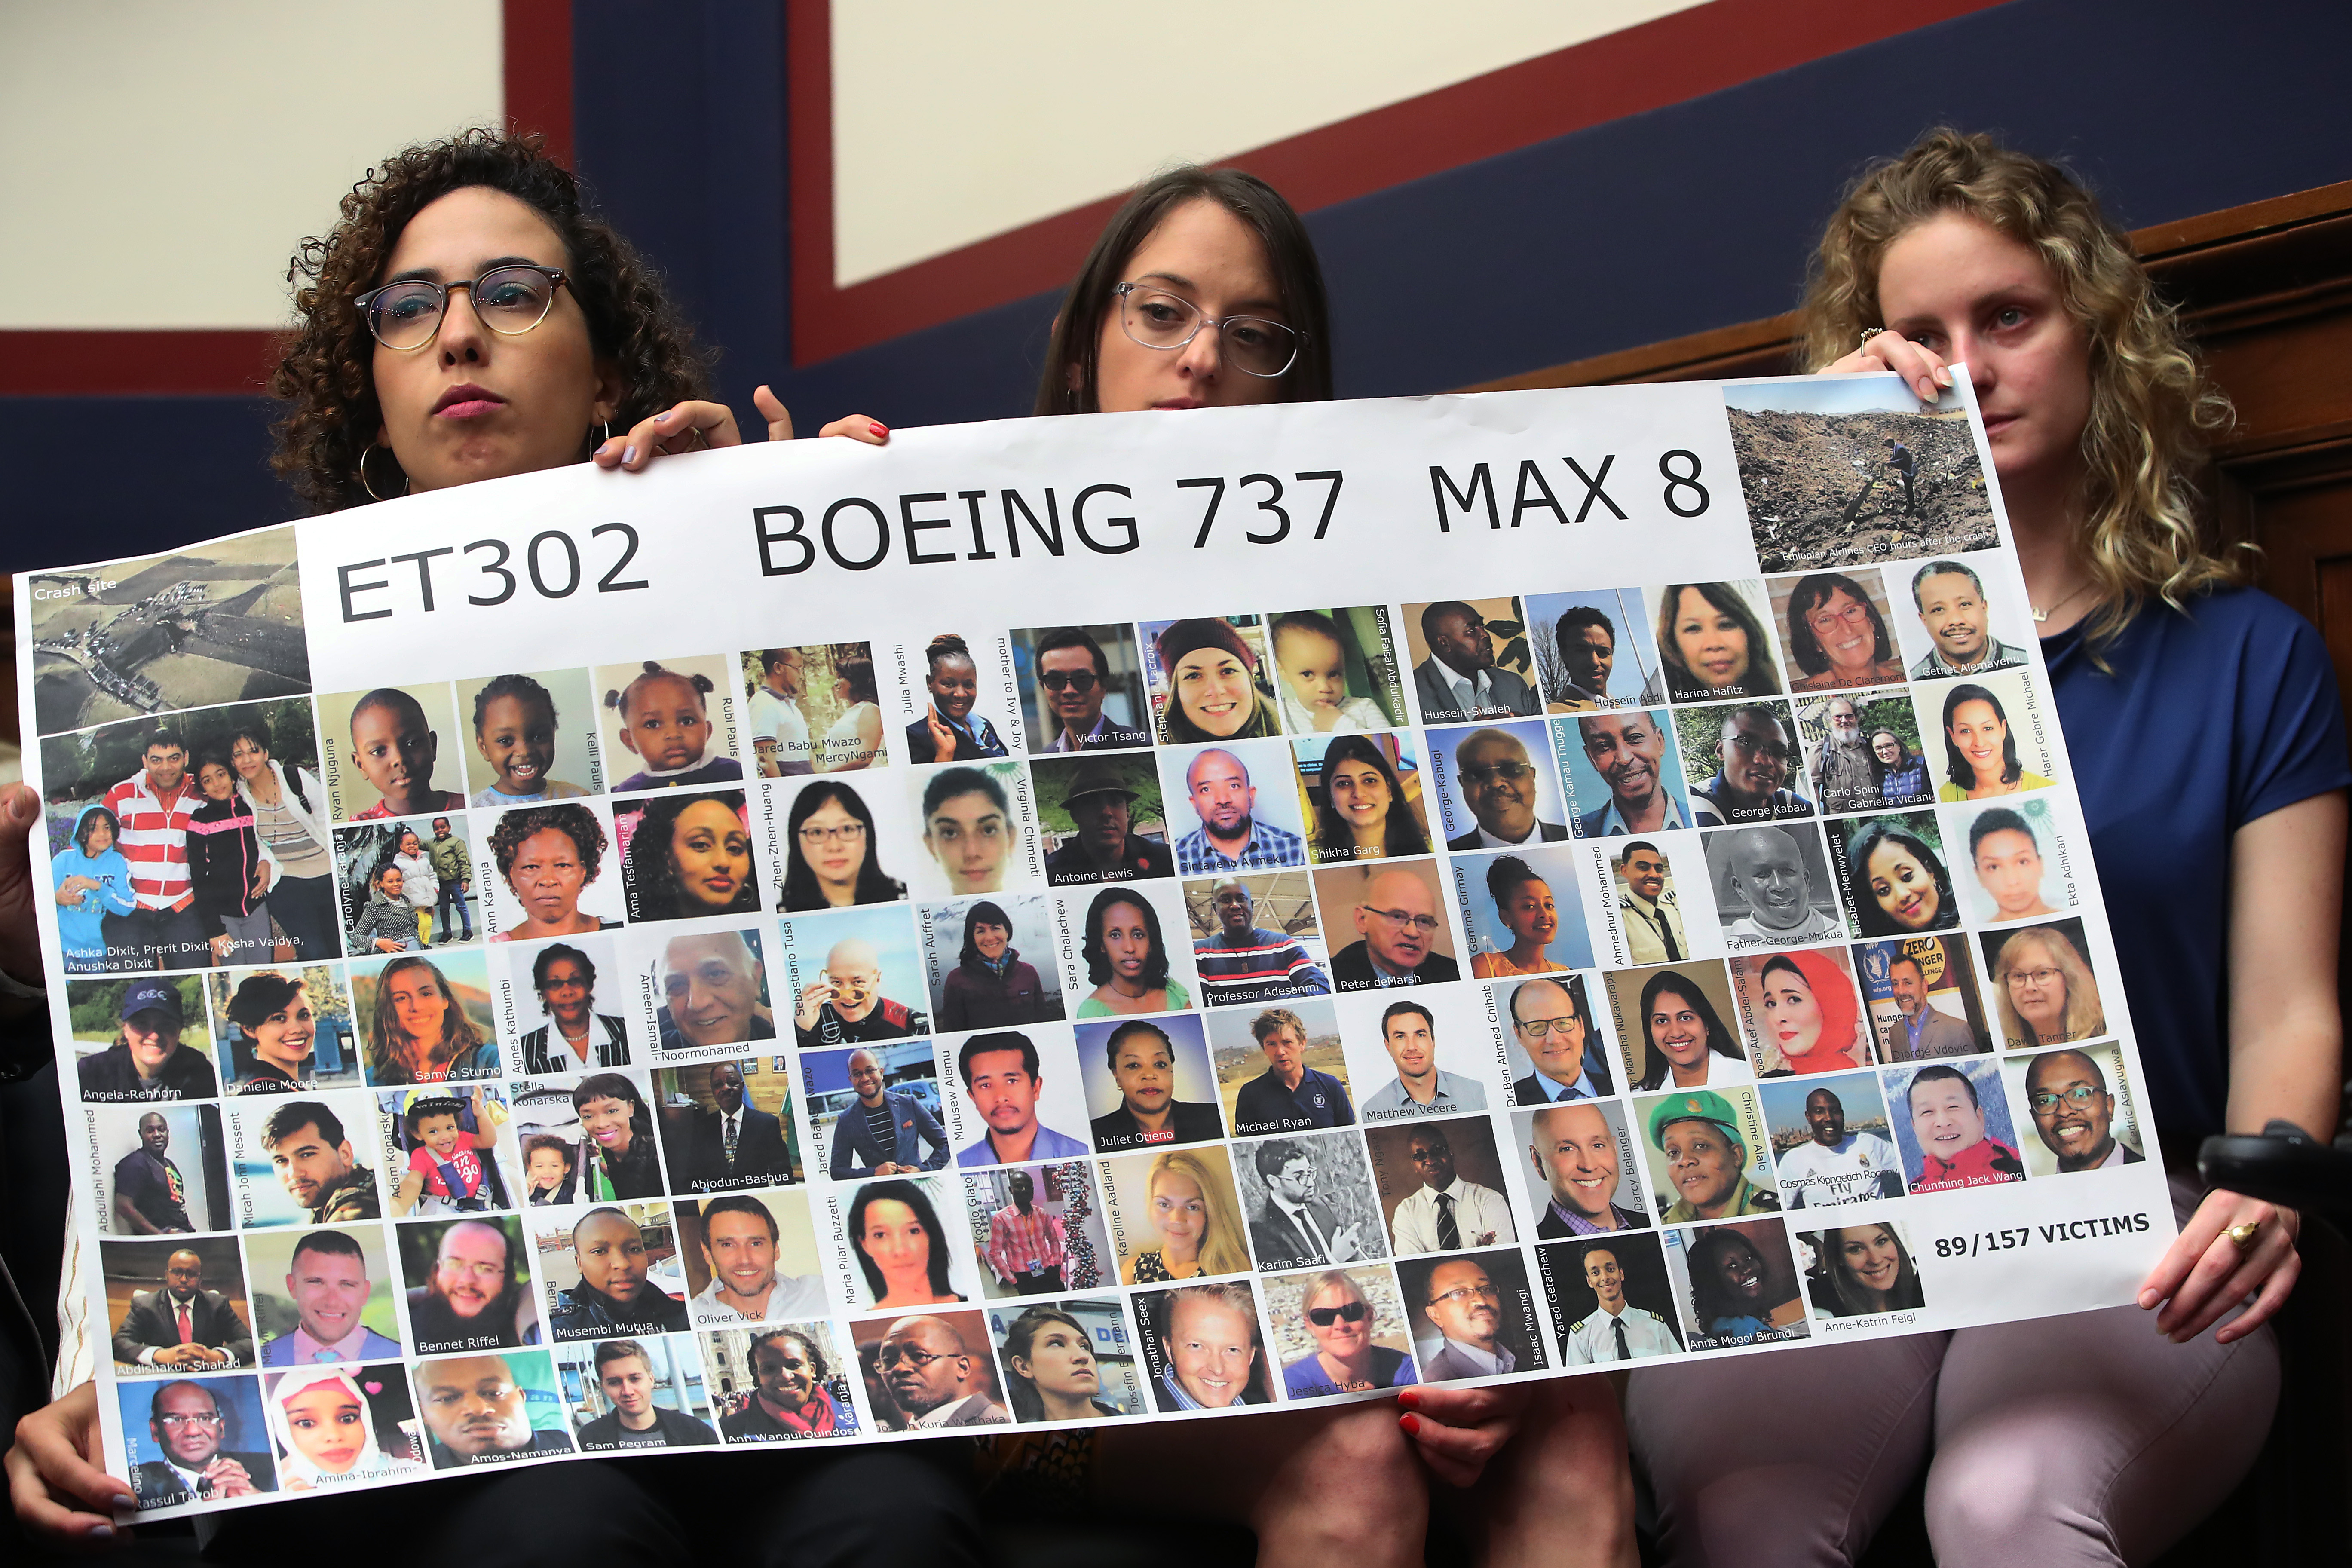 Diana Sotomyor, Hayley Freedman and Deveney Williams, friends of Samya Stumo, who was killed when Ethiopian Airlines Flight ET302 crashed in Ethiopia, listen to testimony during a House Transportation and Infrastructure Committee hearing on Capitol Hill June 19, 2019 in Washington, DC. (Photo by Mark Wilson/Getty Images)